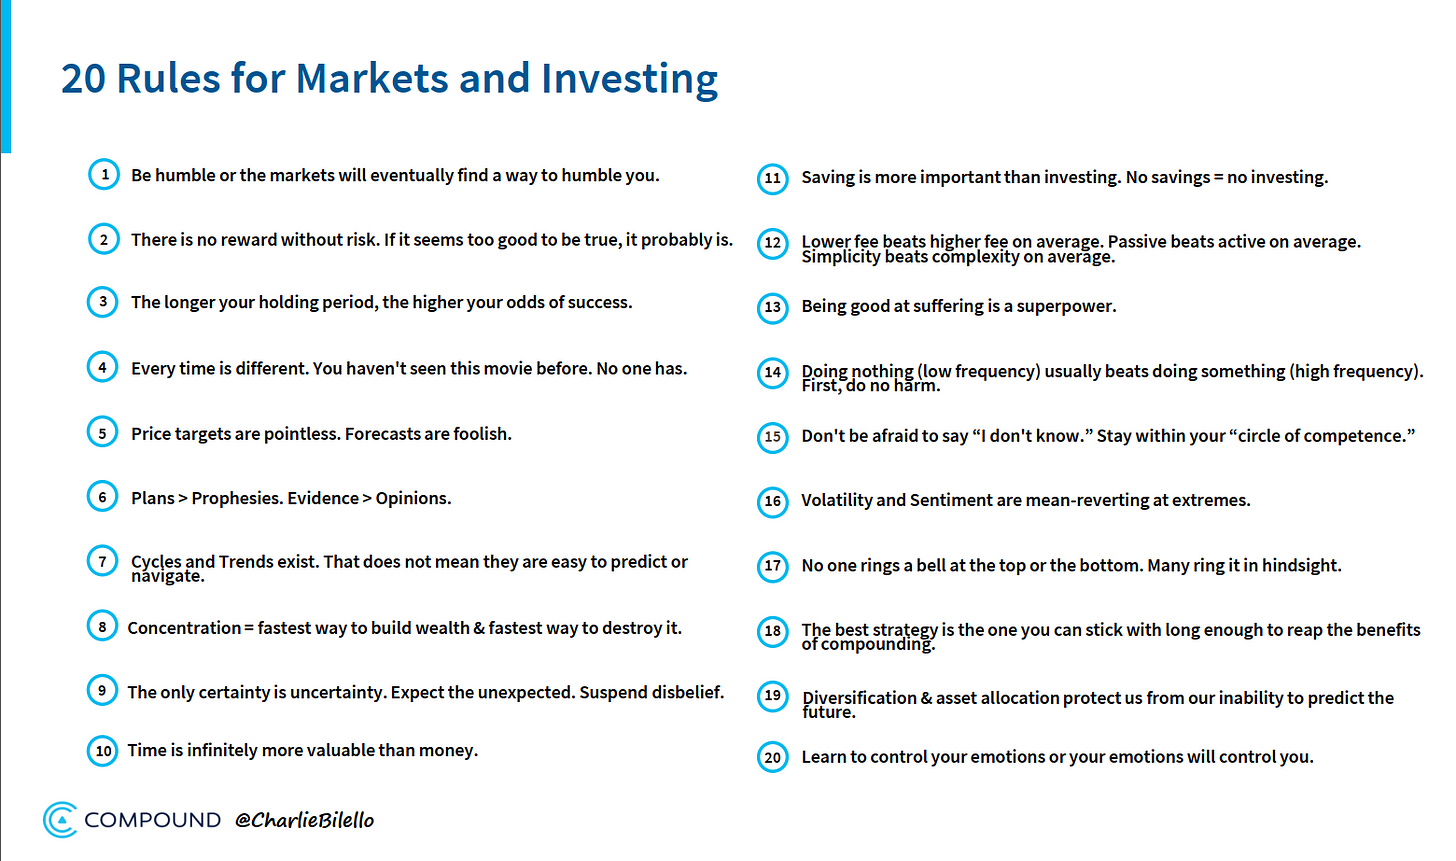 20 Rules for Markets and Investing